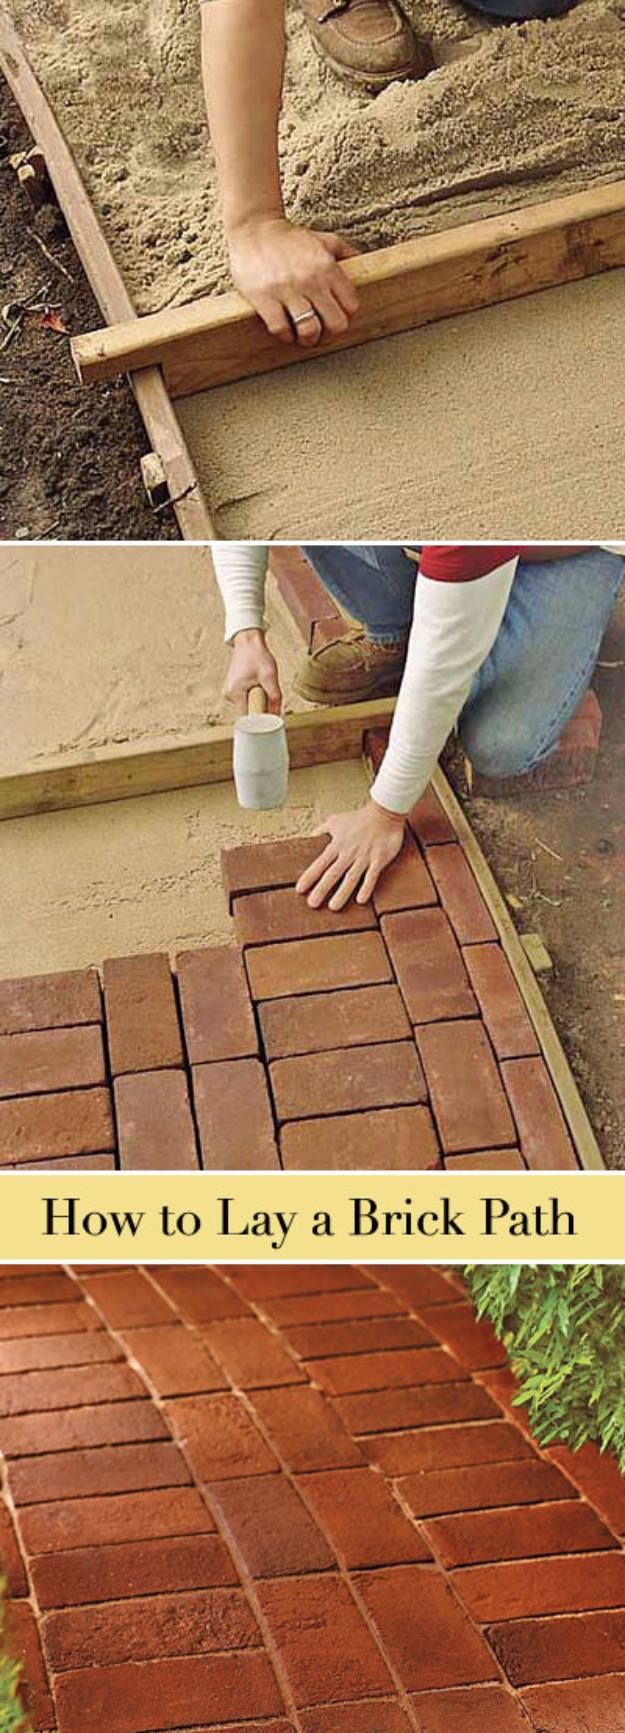 How to lay brick walkway - Lay A Brick Path Curb Appeal Ideas On A Budget